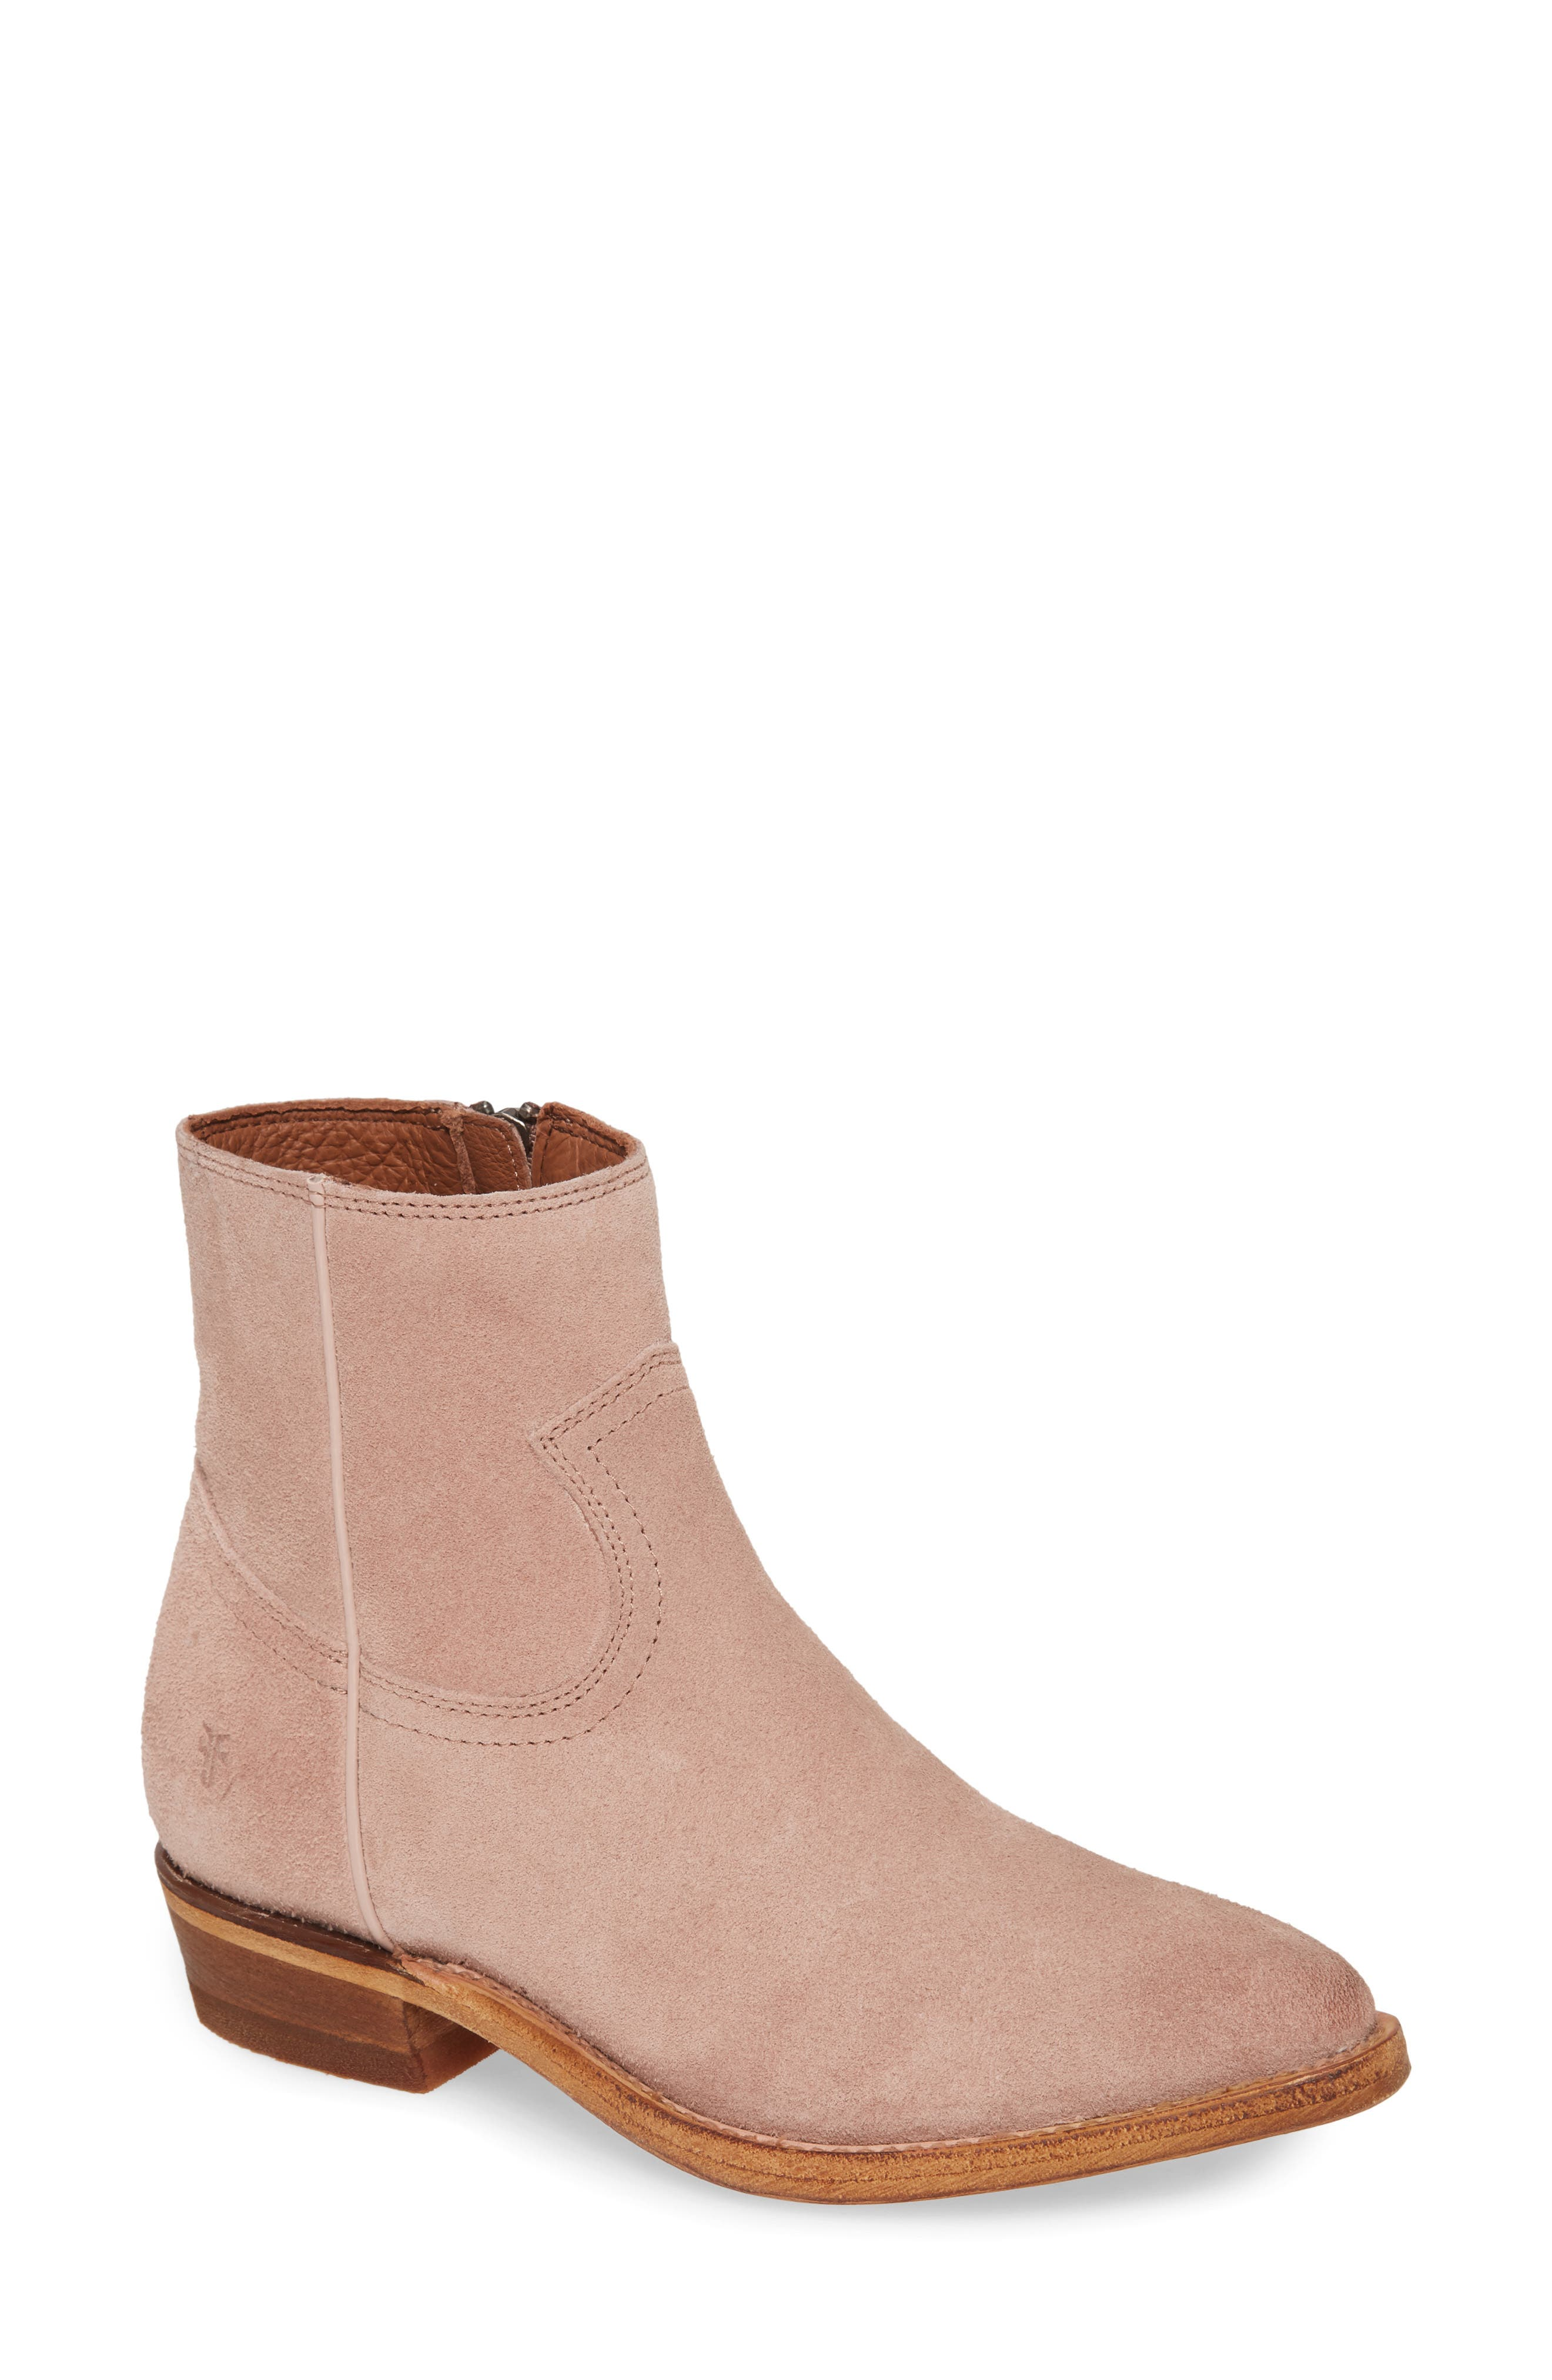 Western detailing makes a subtle statement on a full-grain leather bootie that\'s a poised standby style. Style Name: Frye Billy Bootie (Women). Style Number: 5947095. Available in stores.